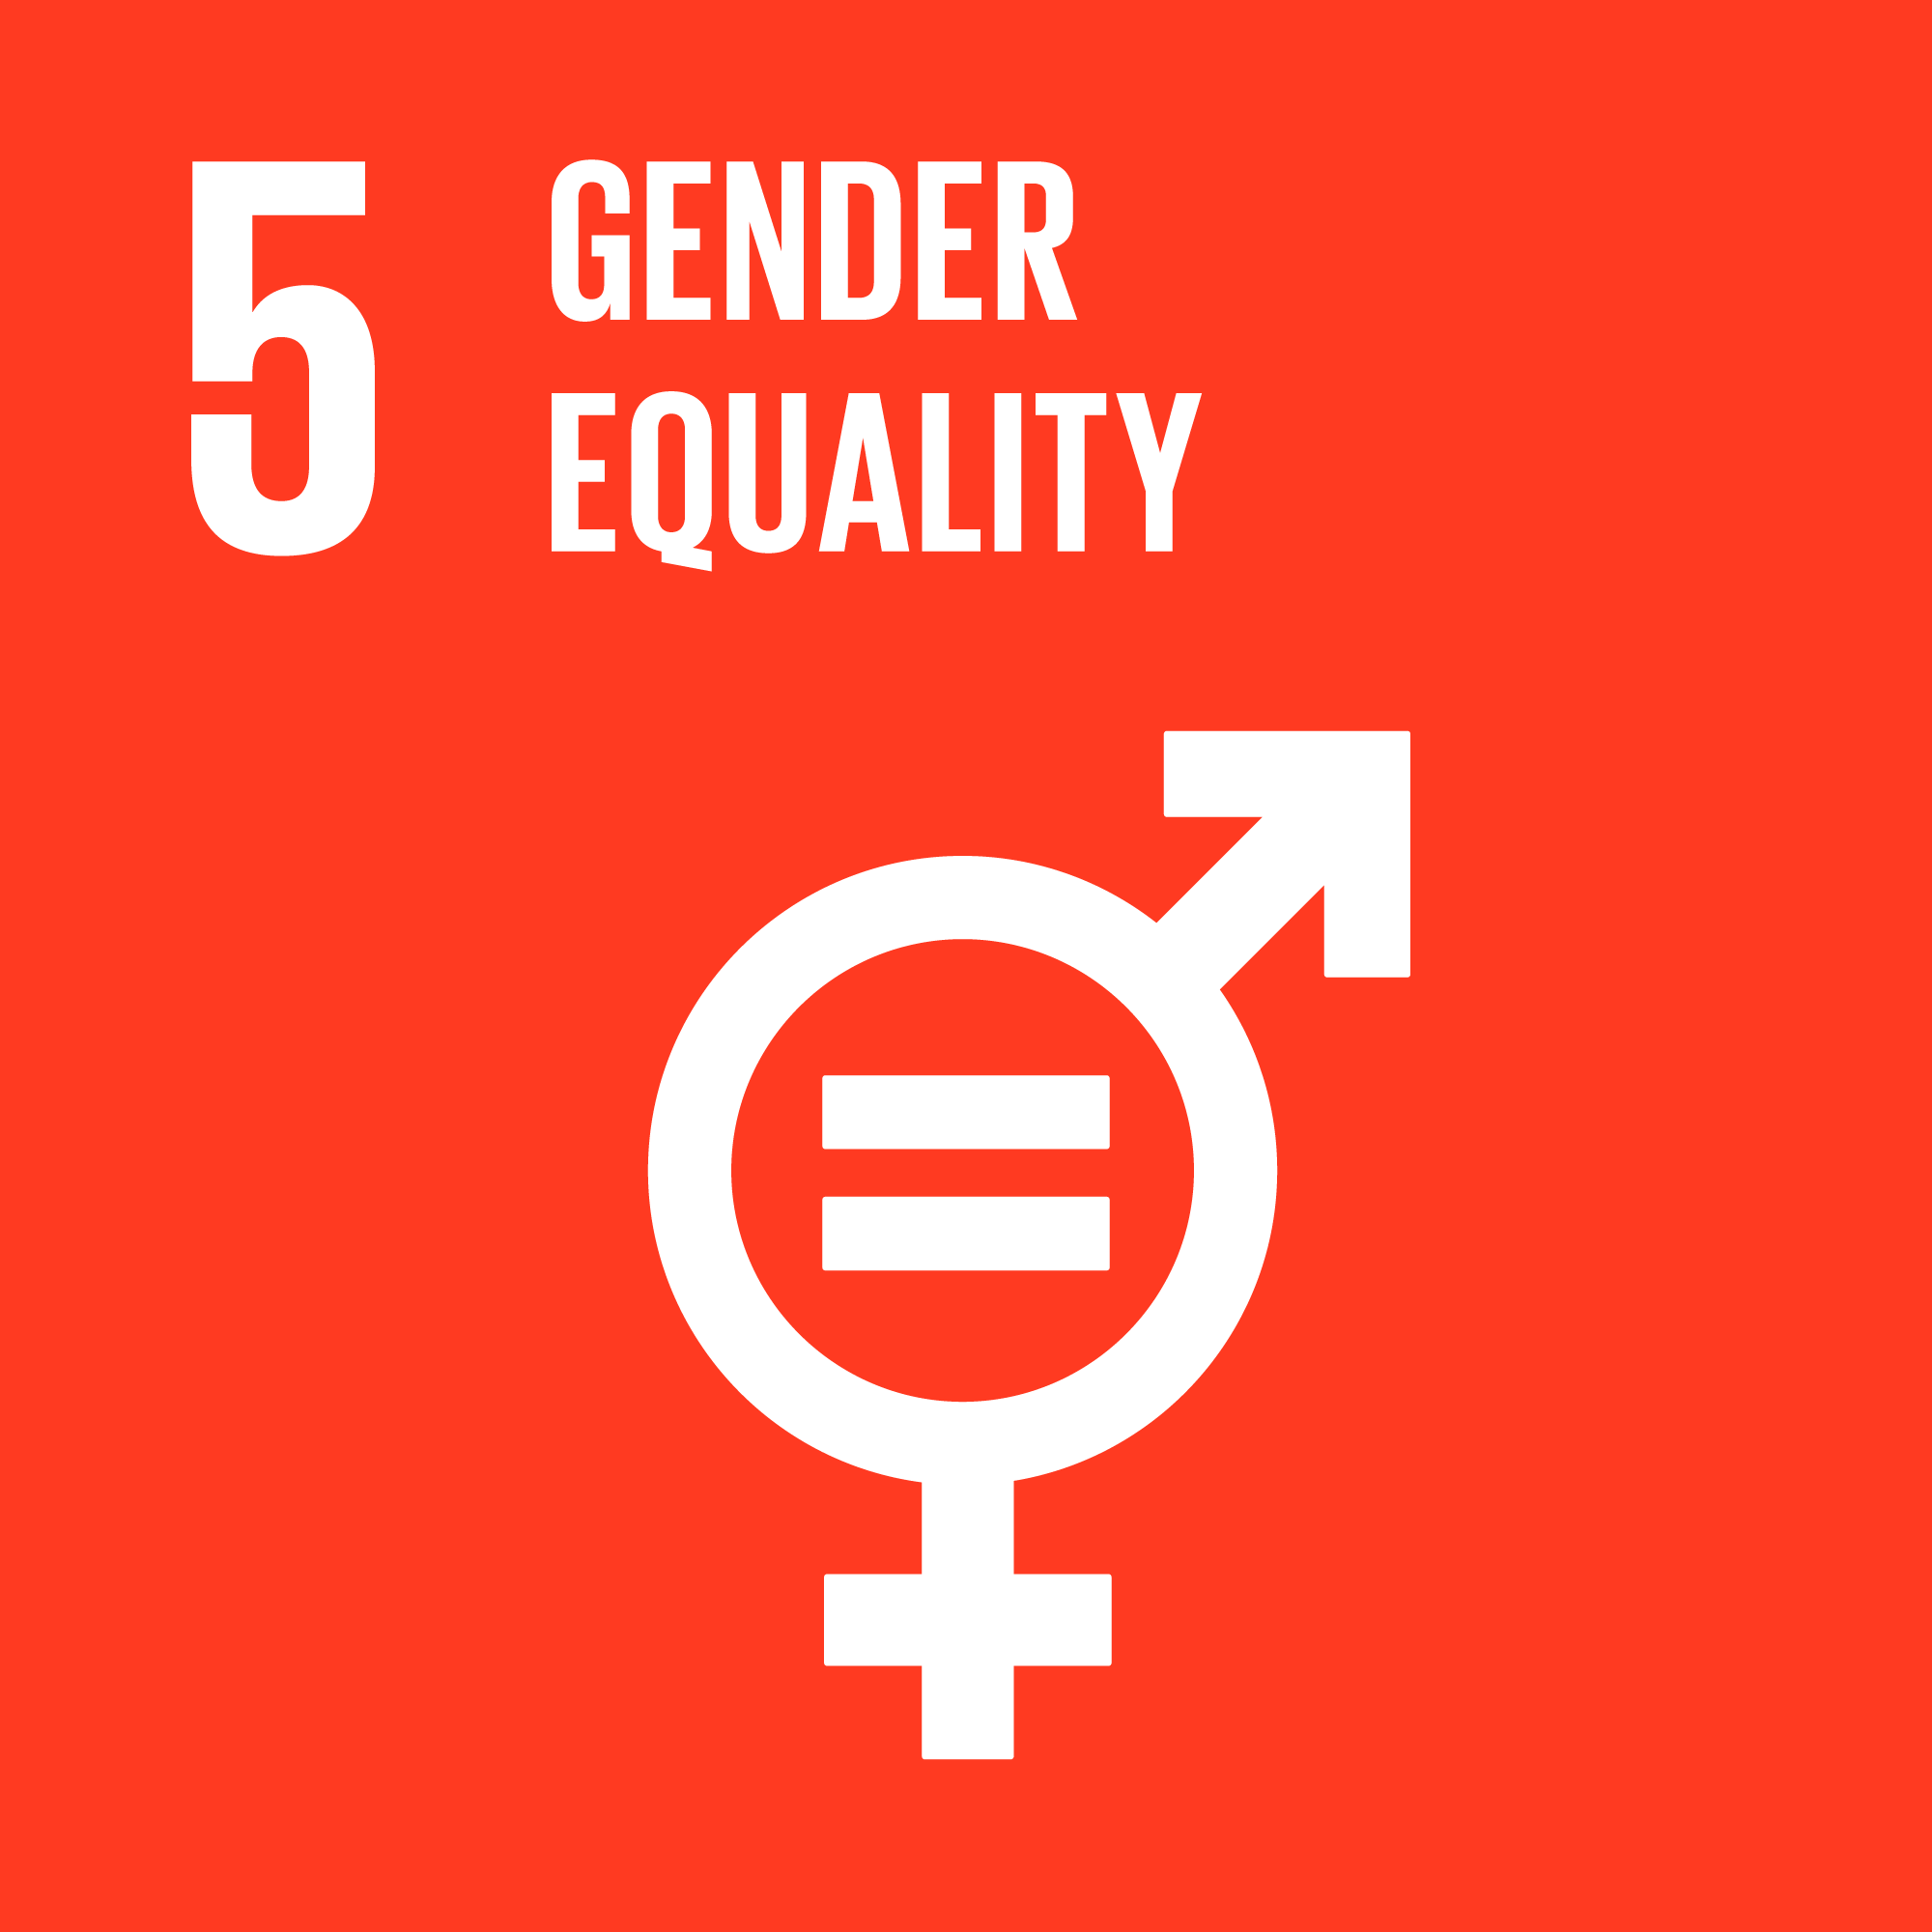 Icon for the global goals number 5, Gender equality